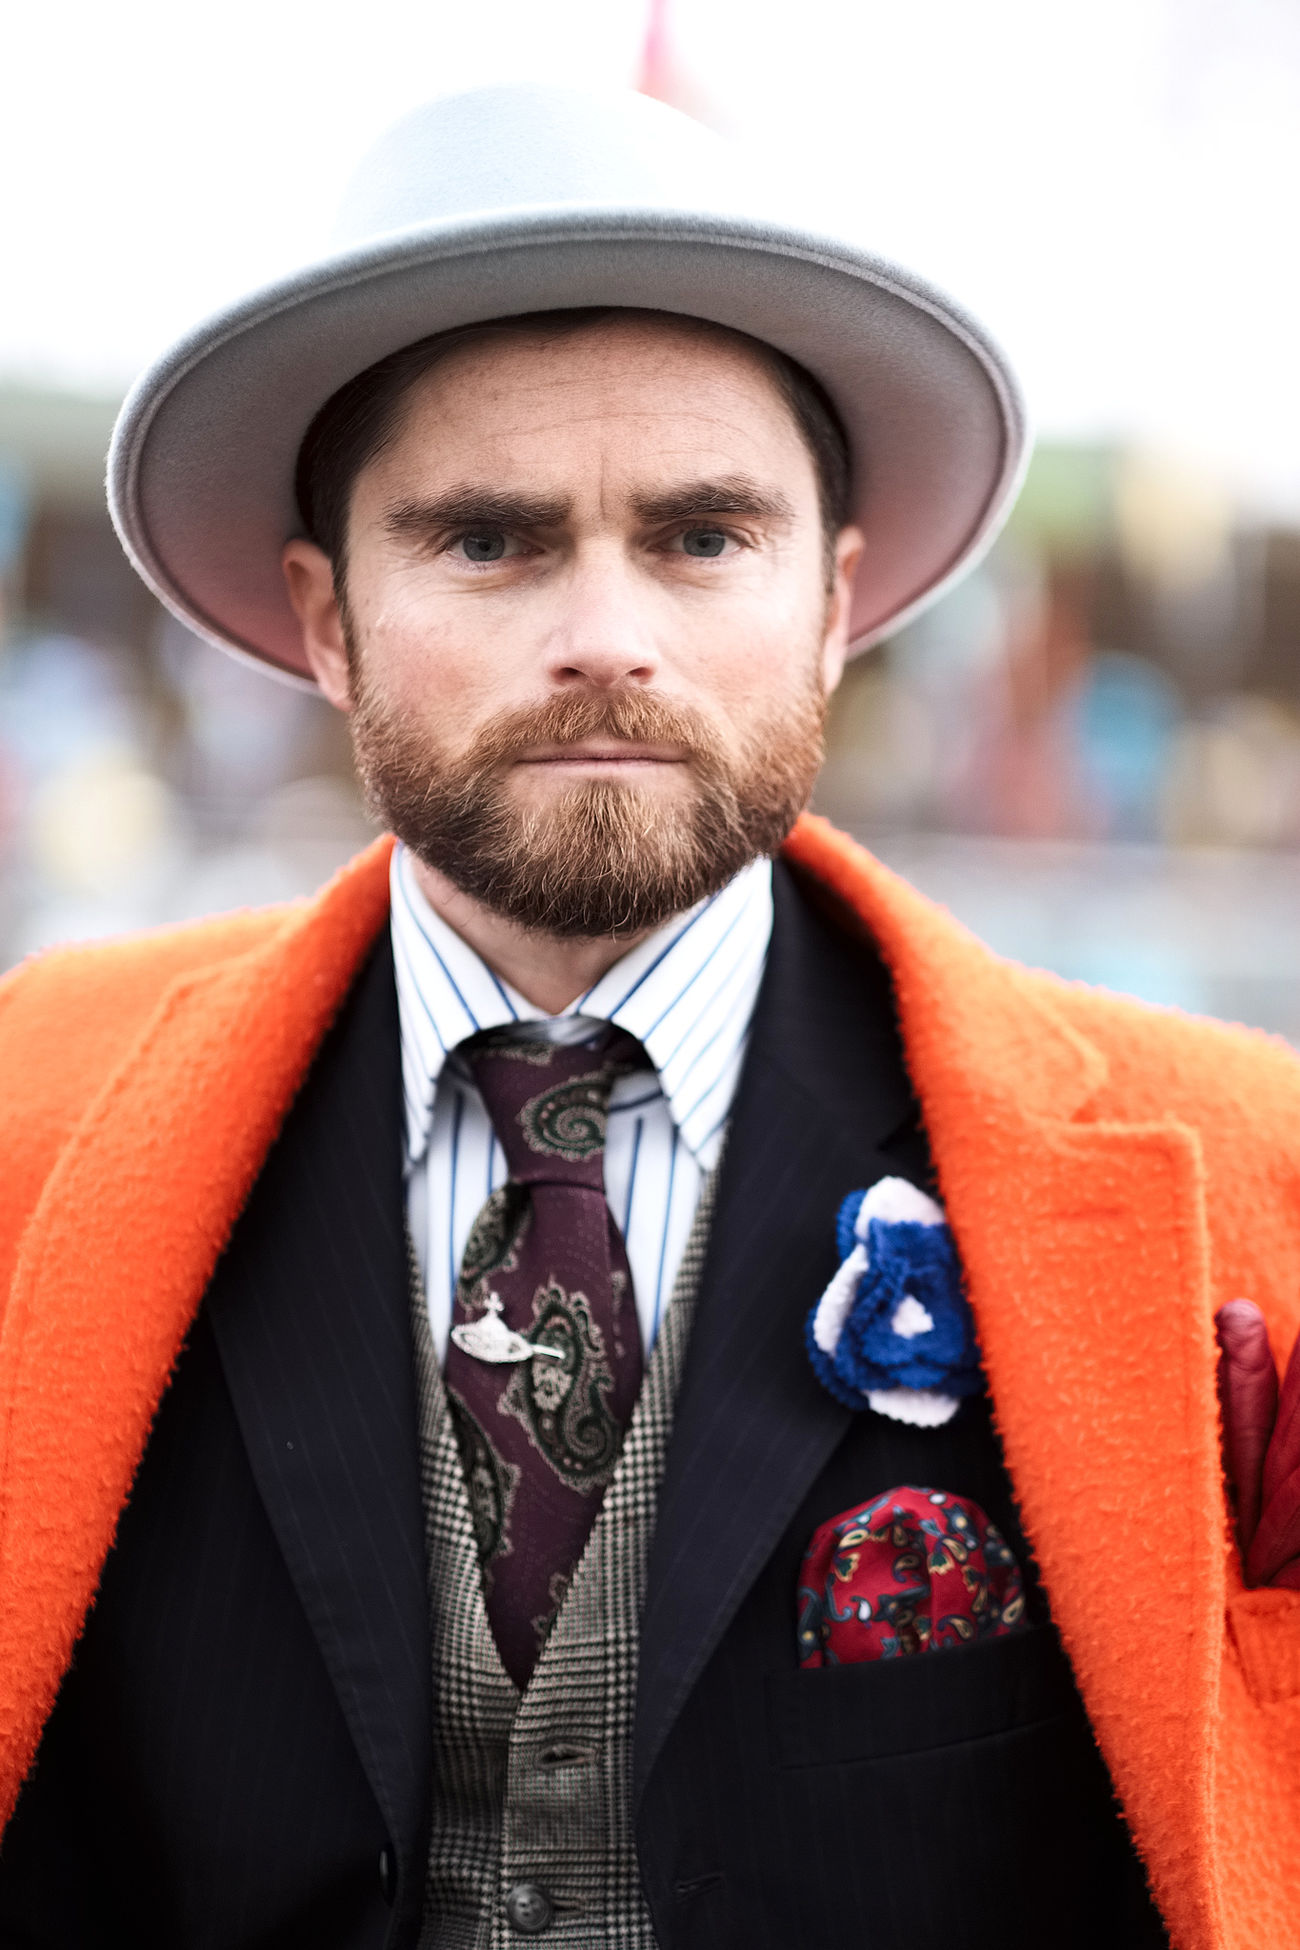 Photos taken at 91th edition of Pitti Uomo in Florence, Italy. Check out my blog for the full story. Beard Colorful Fashion Fashion Photography Fashionable Fashionblogger Fashionista Fashionphotography Malefashion Pittiuomo Portrait Streetfashion Style Stylish Suit